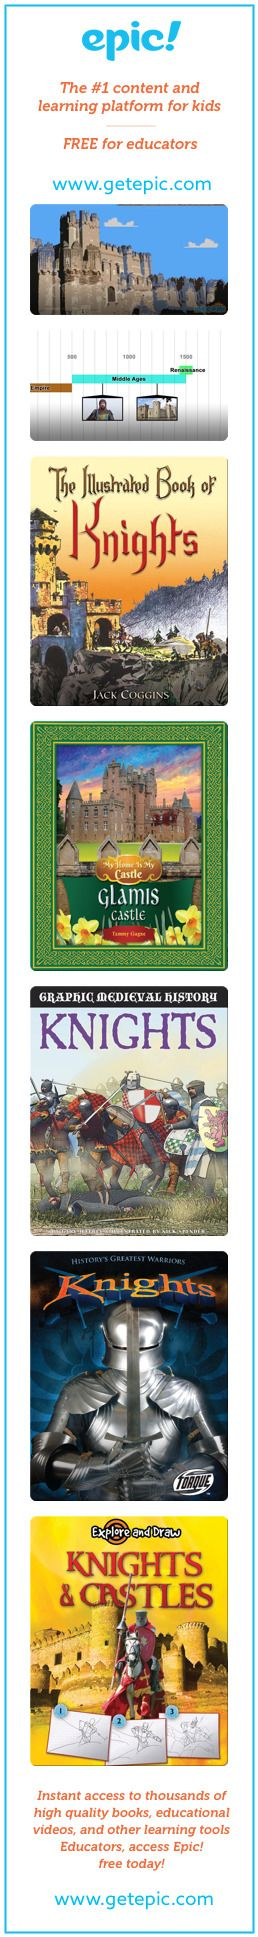 Middle Ages & Knights - Titles in this collection: Top 10 Castles Around the World, Did You Know: Middle Ages, The Illustrated Book Of Knights, Glamis Castle, Knights...